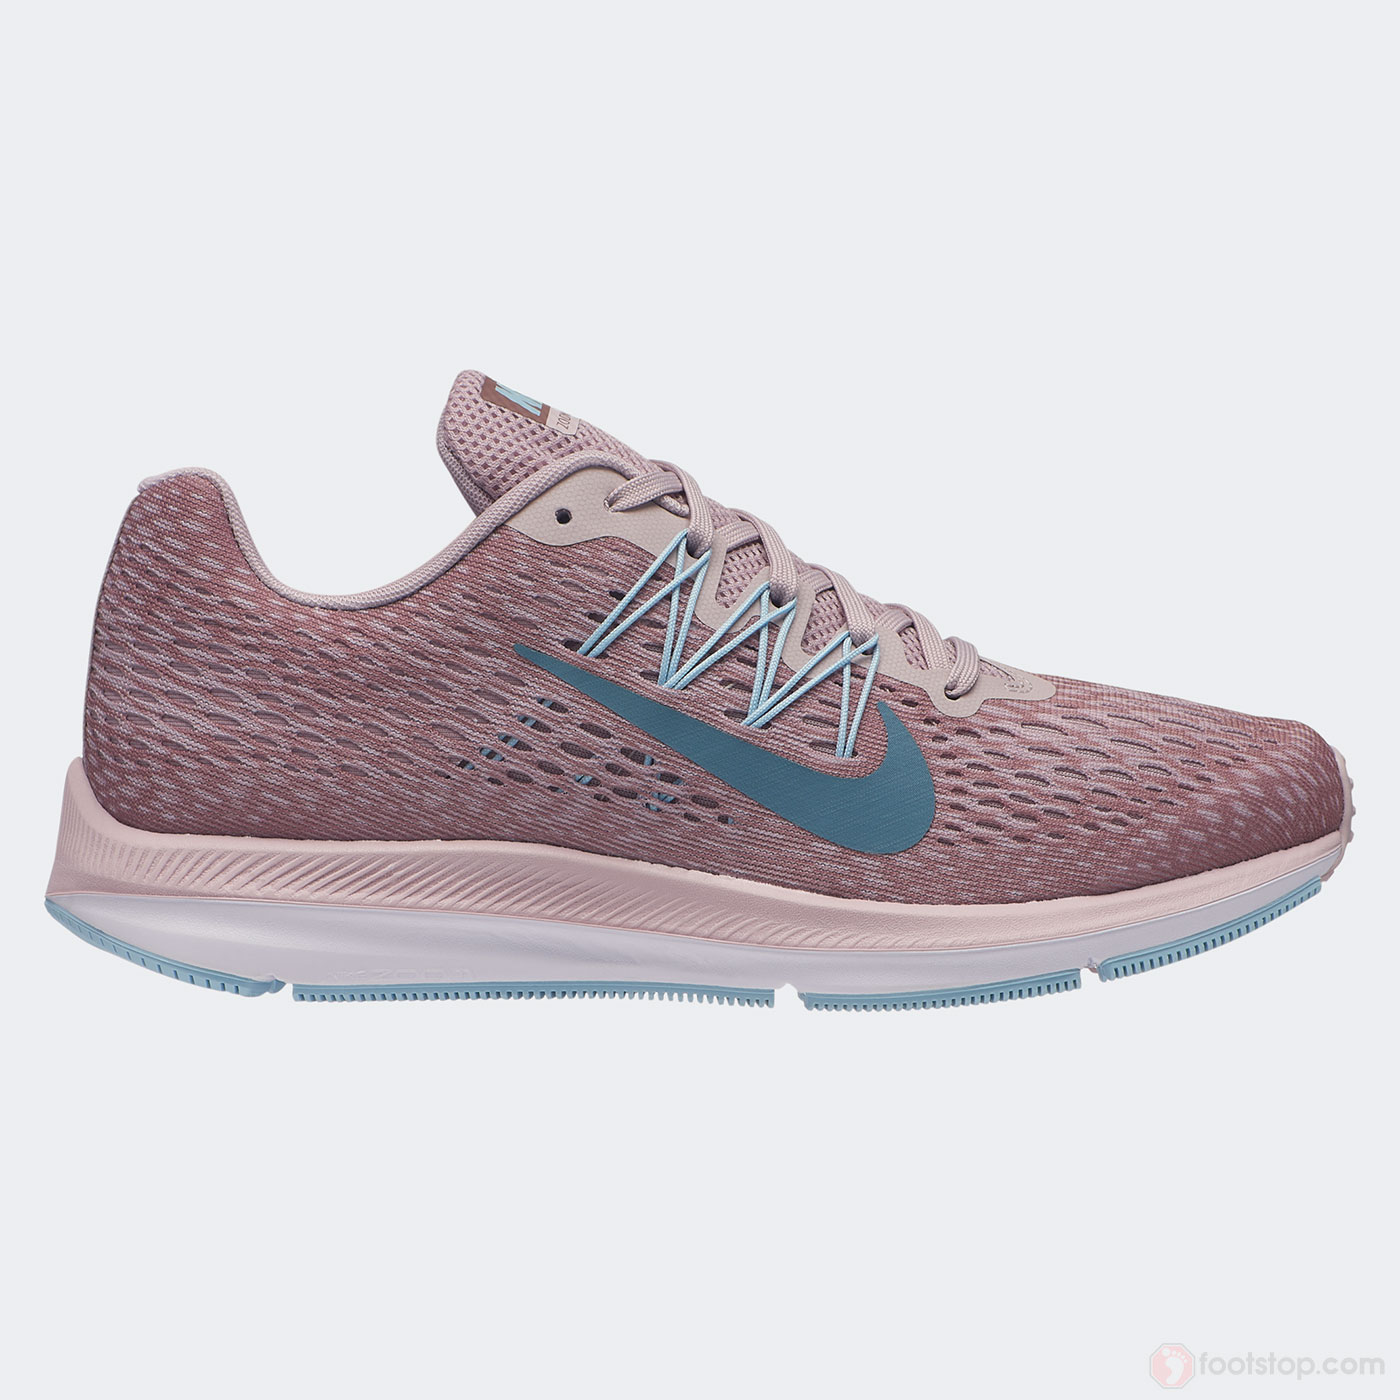 6cac5d2aa98 Home Mujer Zapatillas de running mujer. Nike Air Zoom Winflo 5 ...